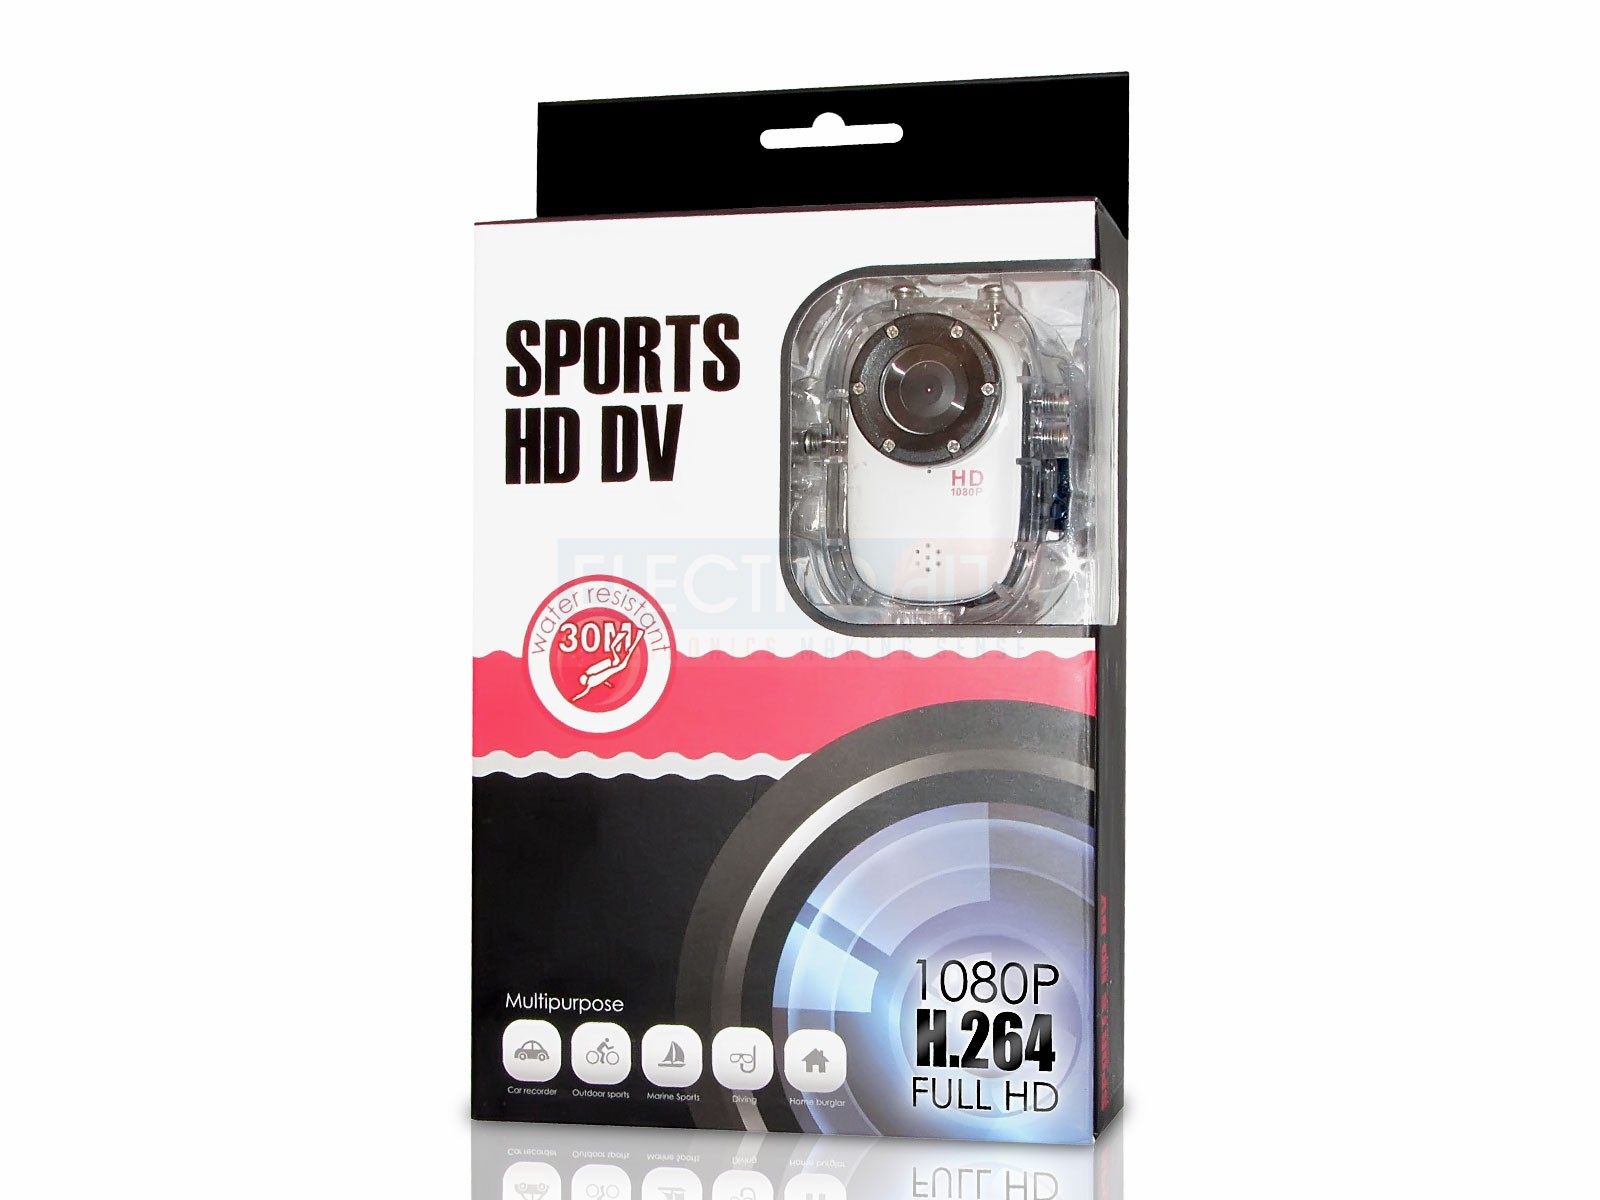 HD Video Camera Retail Box